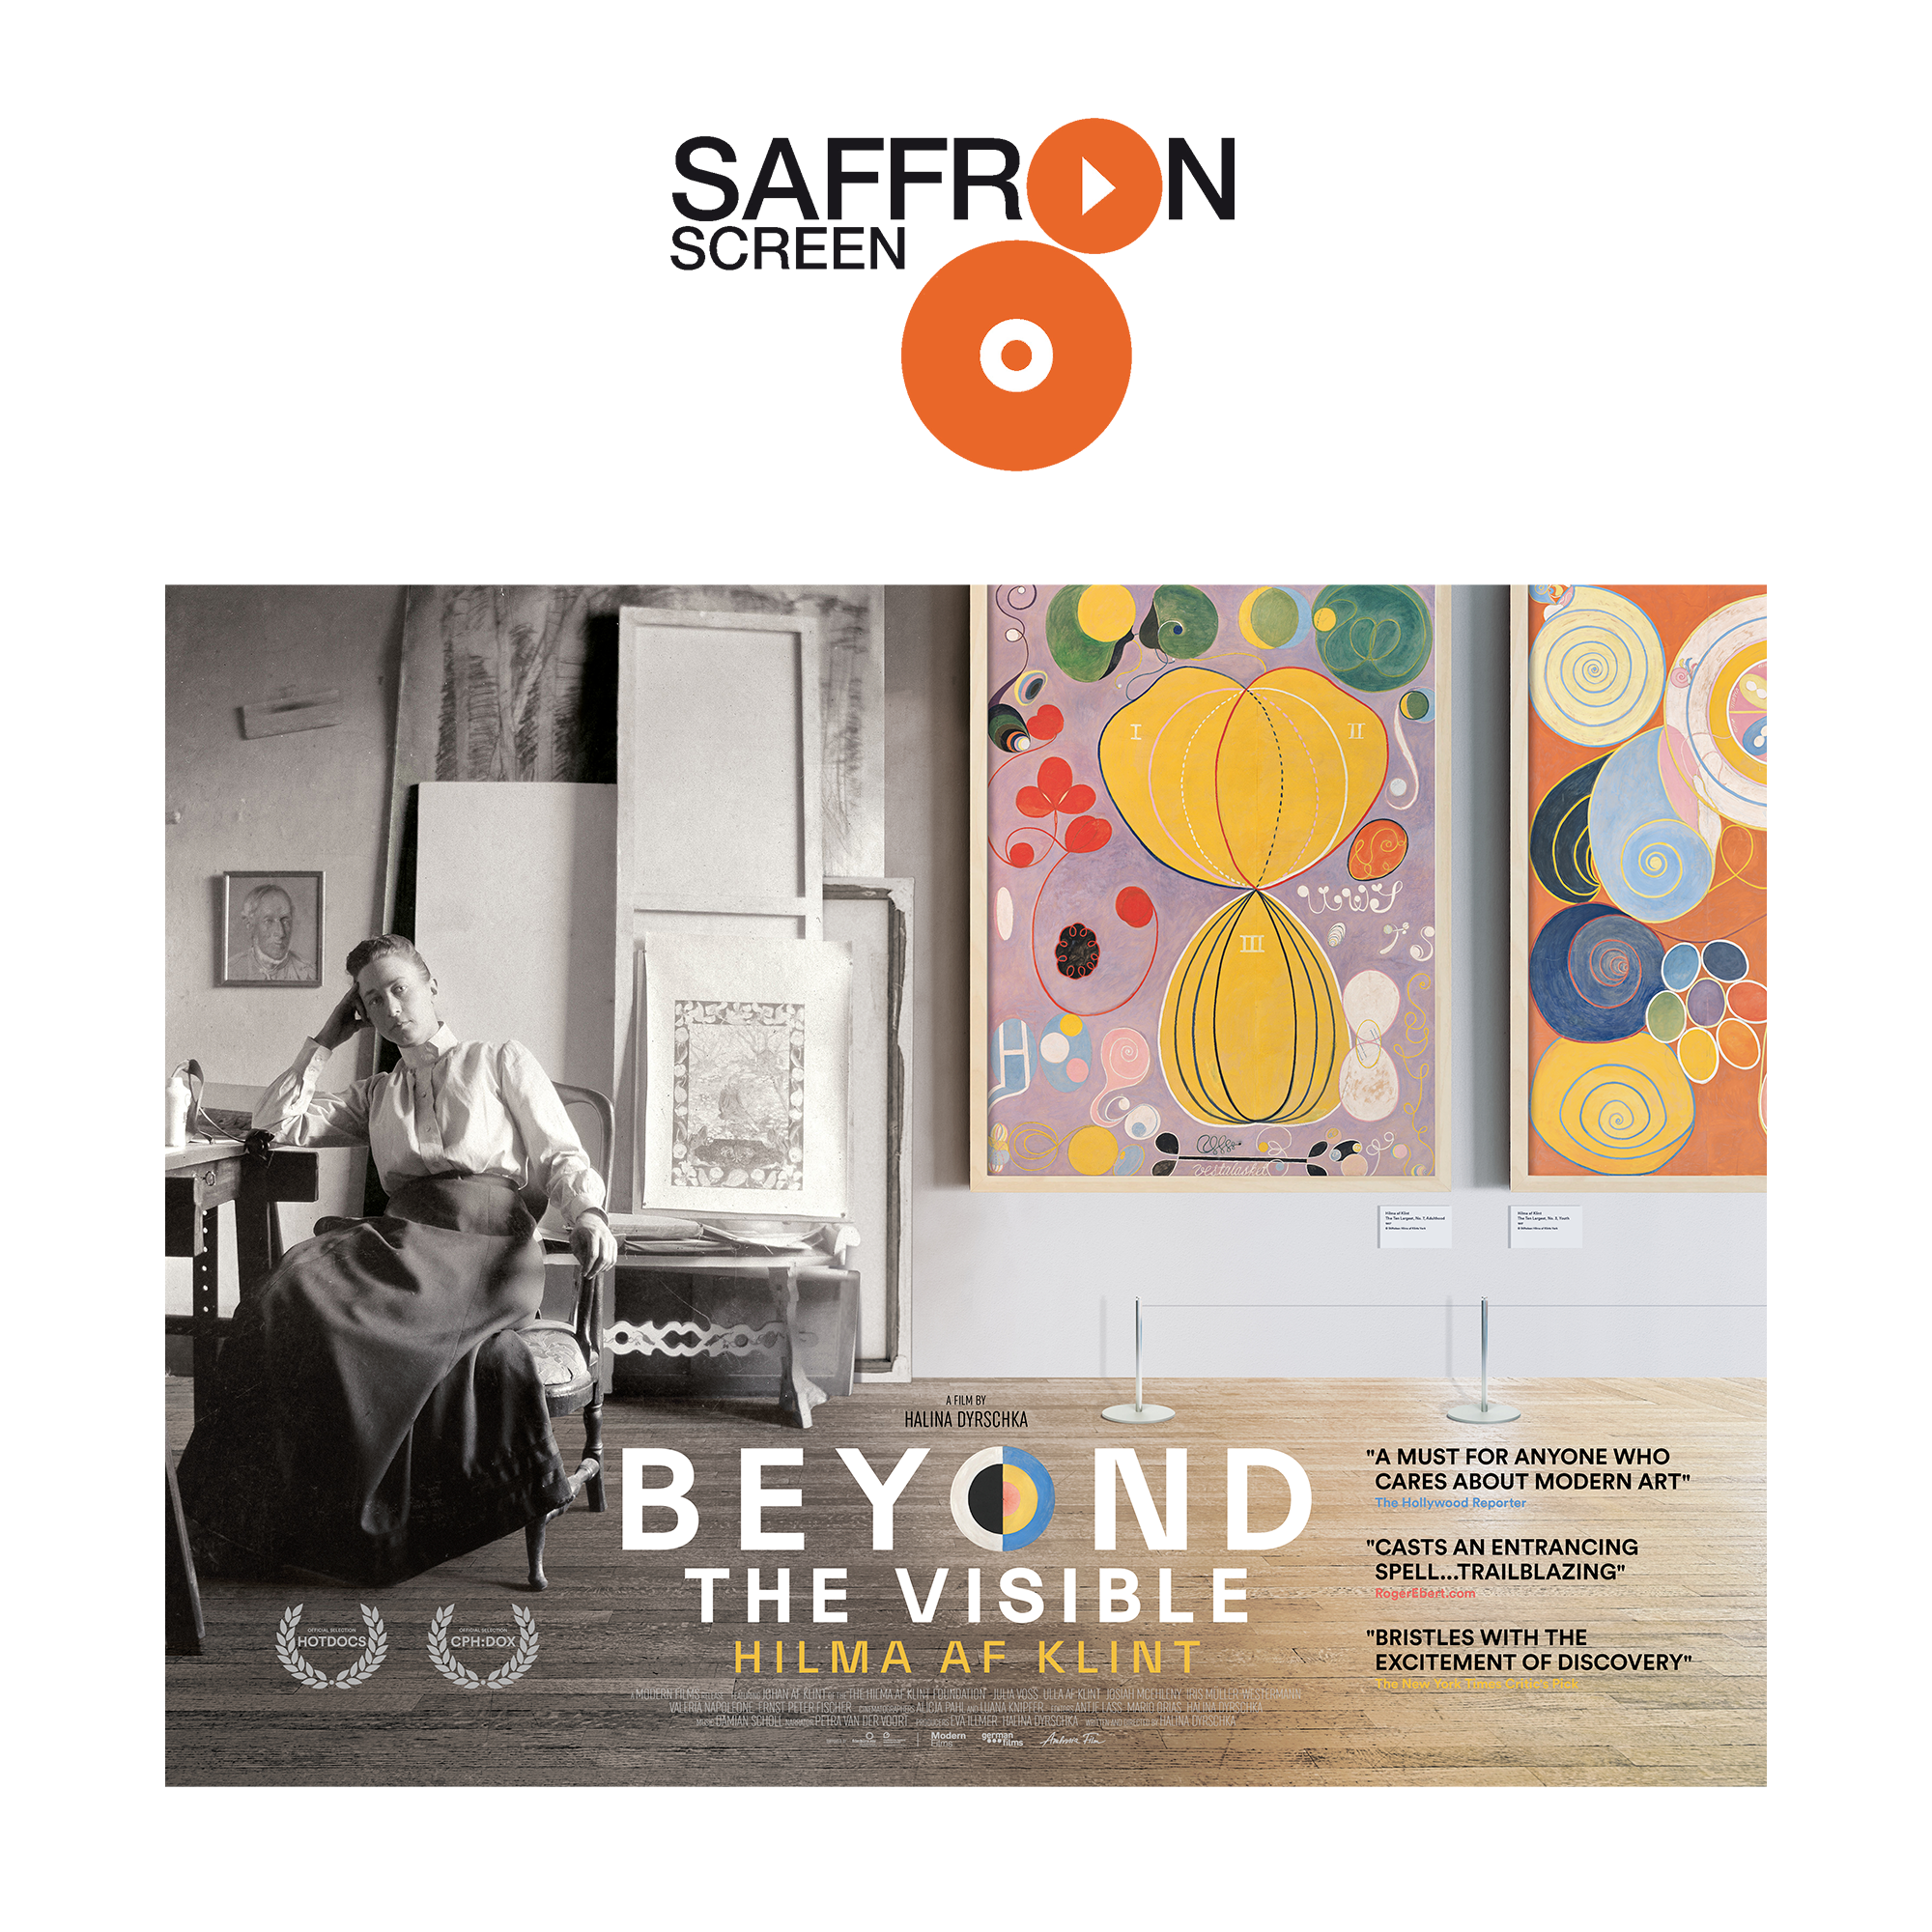 Beyond the Visible: Hilma af Klint at Saffron Screen